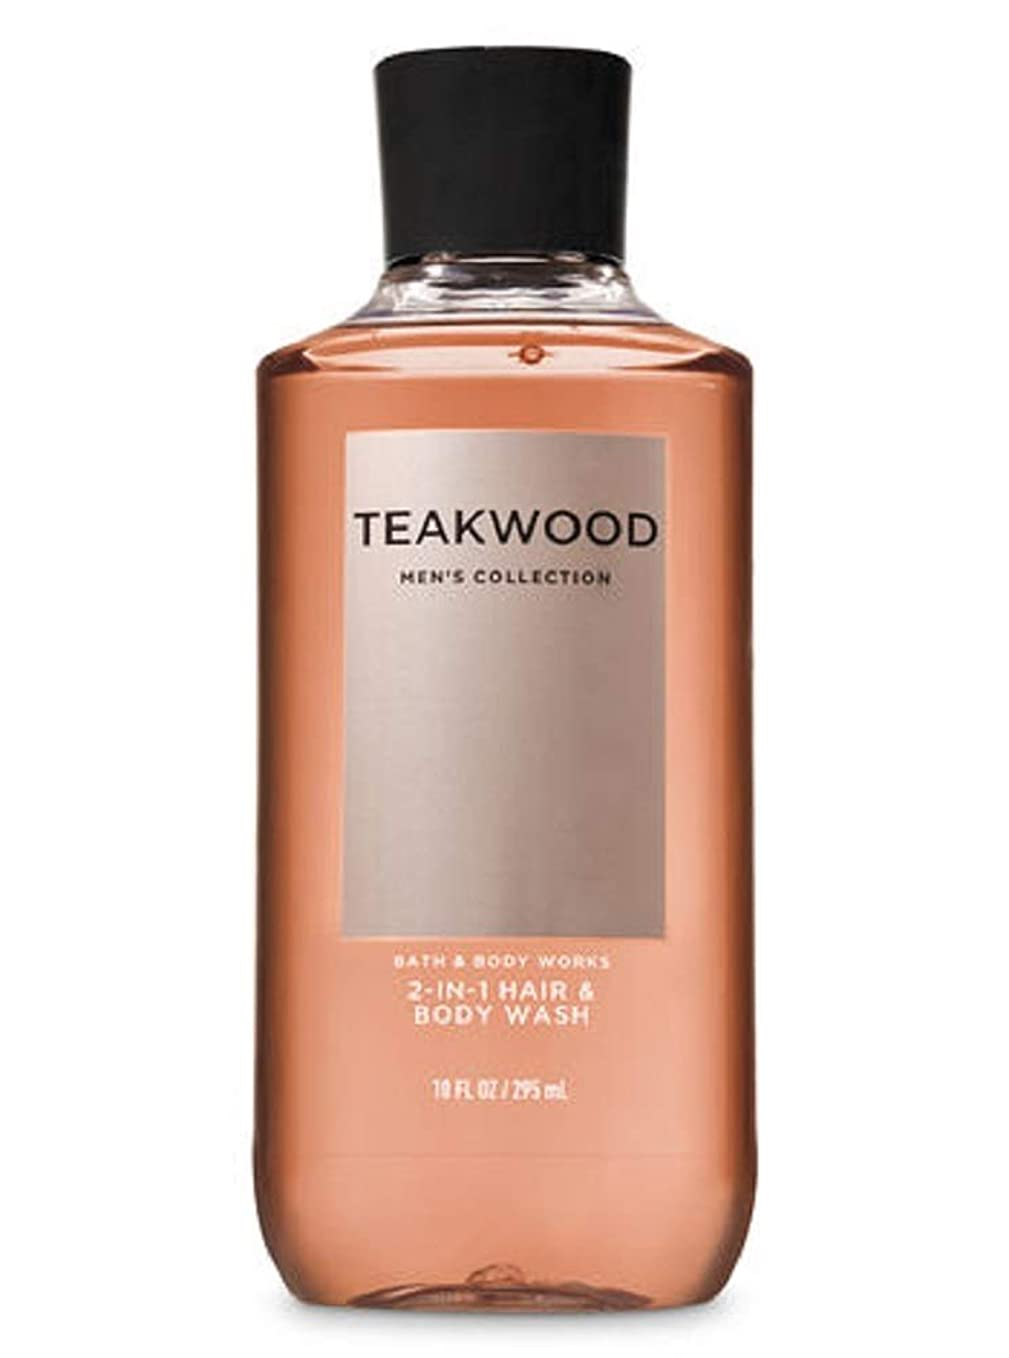 同等の飛行場財政【並行輸入品】Bath & Body Works TEAKWOOD 2-in-1 Hair + Body Wash